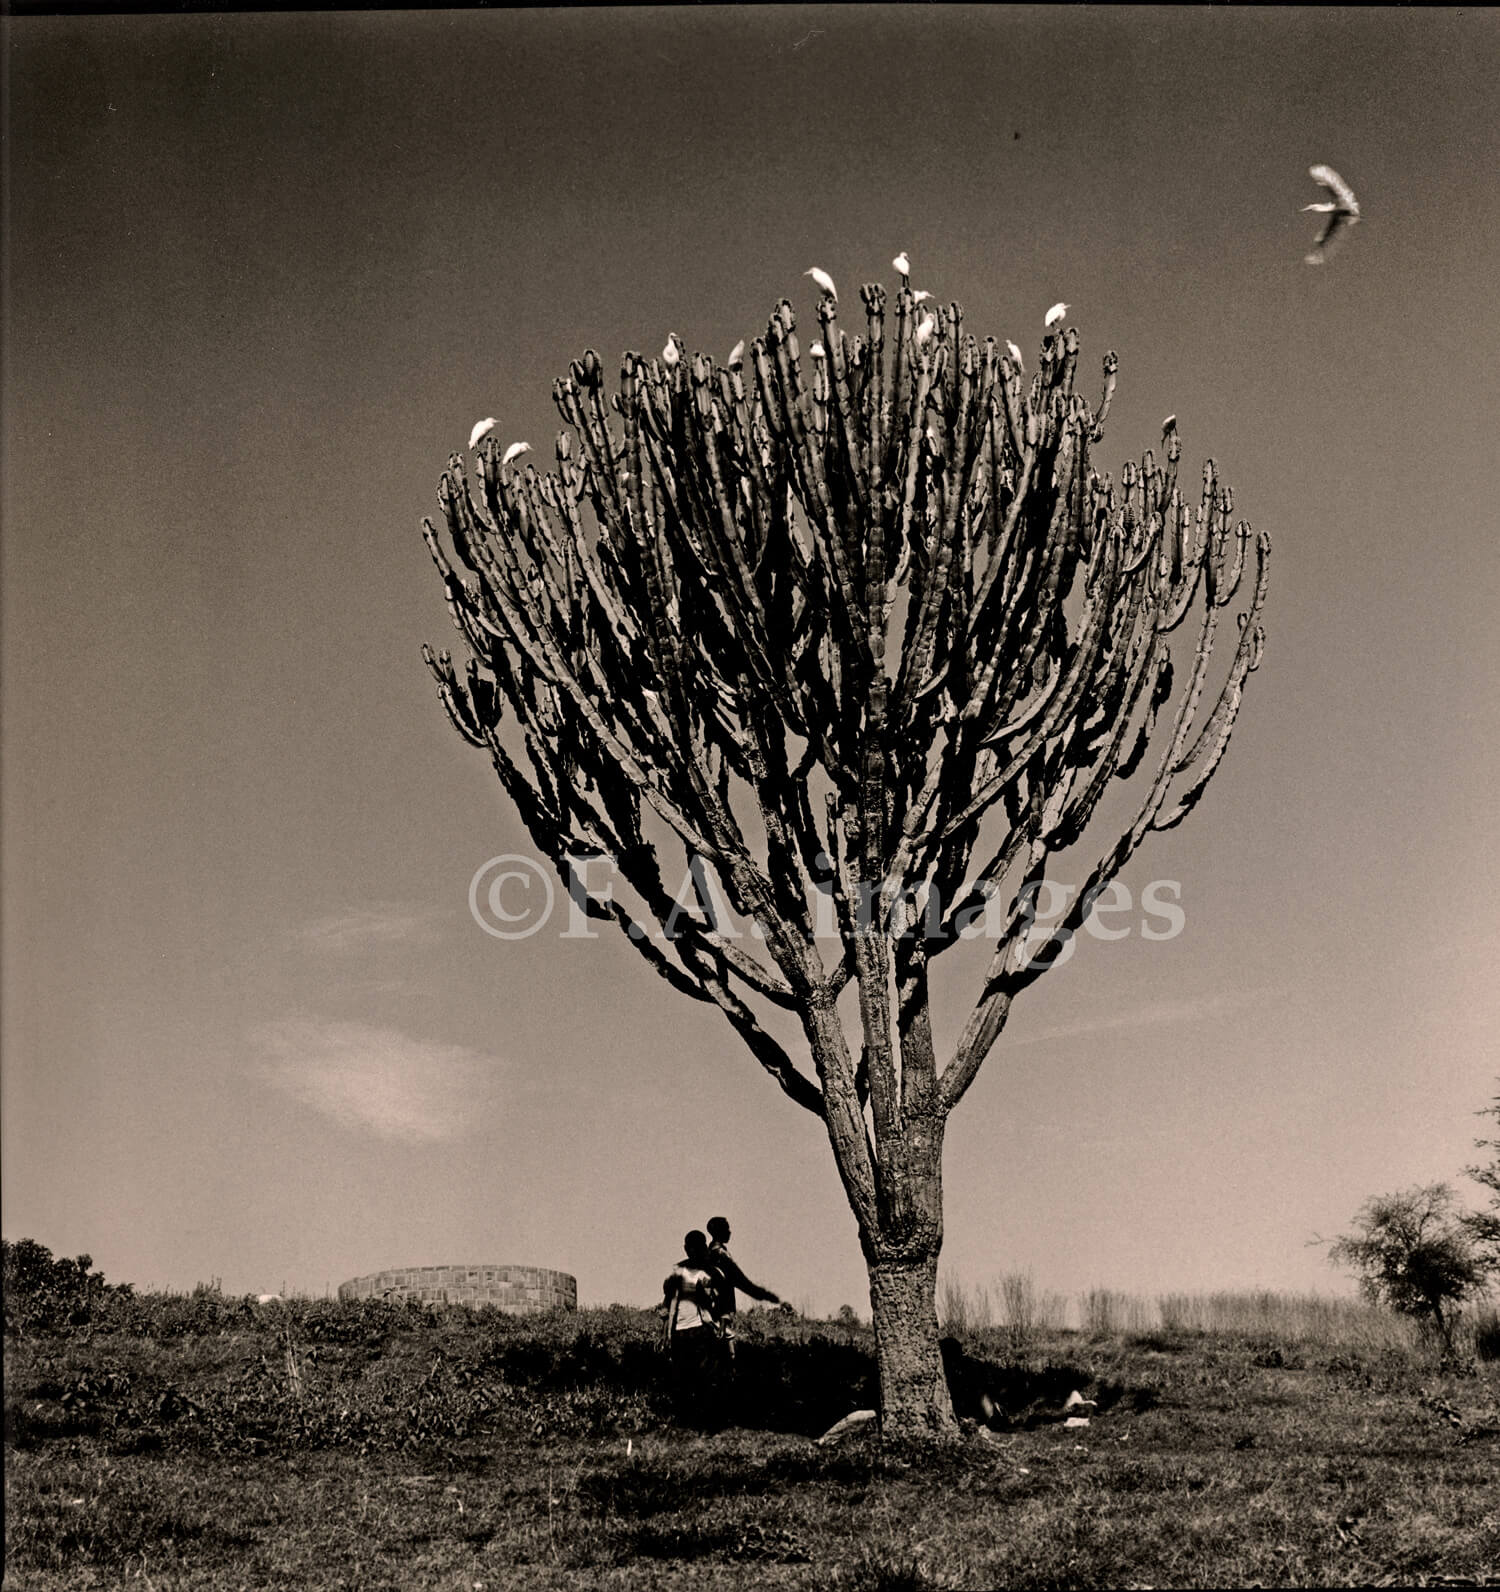 Fawn Anderson's last shot she took in Ethiopia when she thought she was done with photography. It's an atmospheric image of a tree with birds and outlines of people.